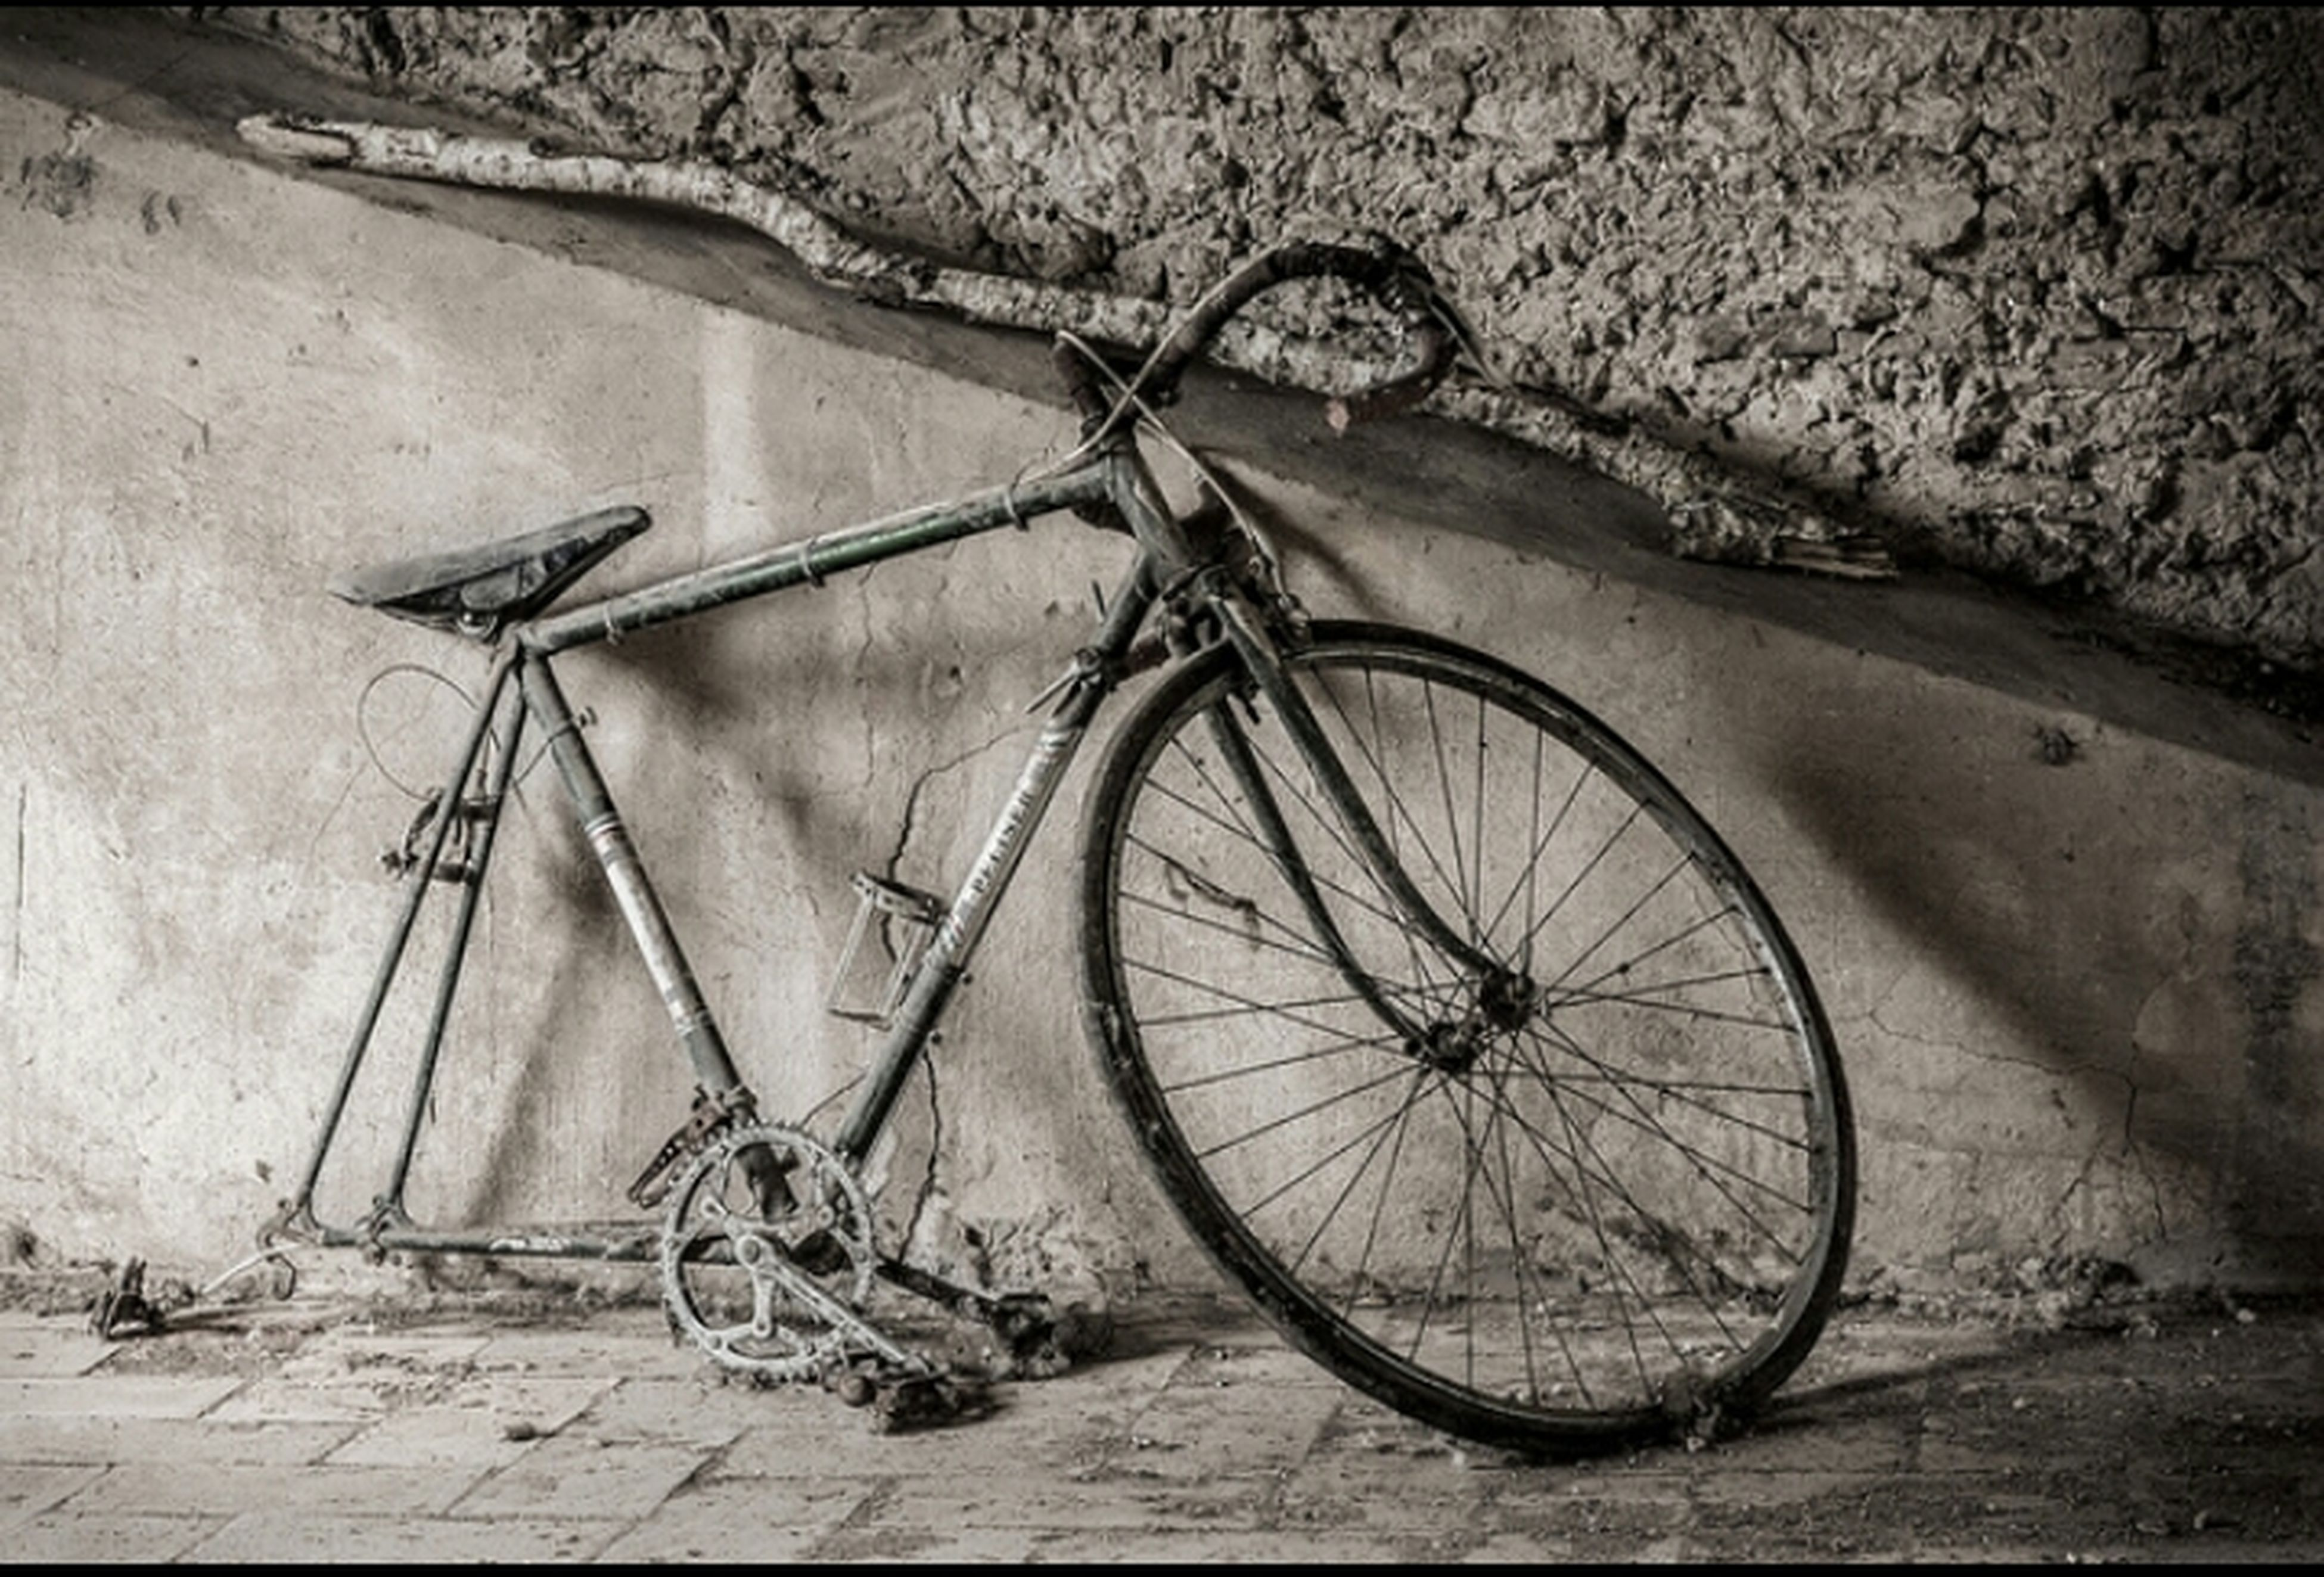 bicycle, mode of transport, transportation, stationary, land vehicle, parked, parking, wheel, wall - building feature, cycle, leaning, no people, wall, outdoors, day, abandoned, absence, shadow, wood - material, sunlight